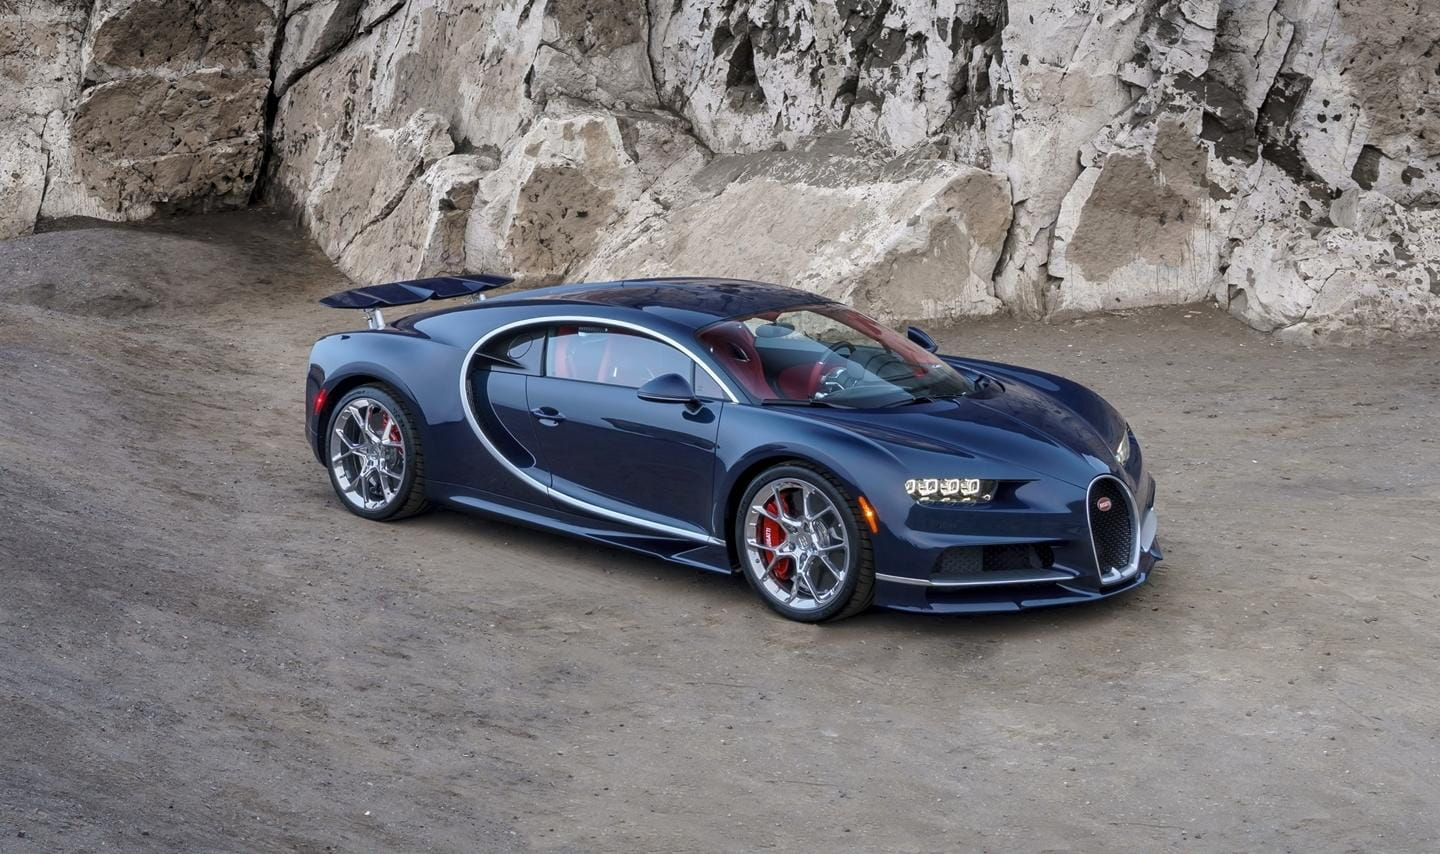 24 photos to make you fall in love with the Bugatti Chiron on its US debut